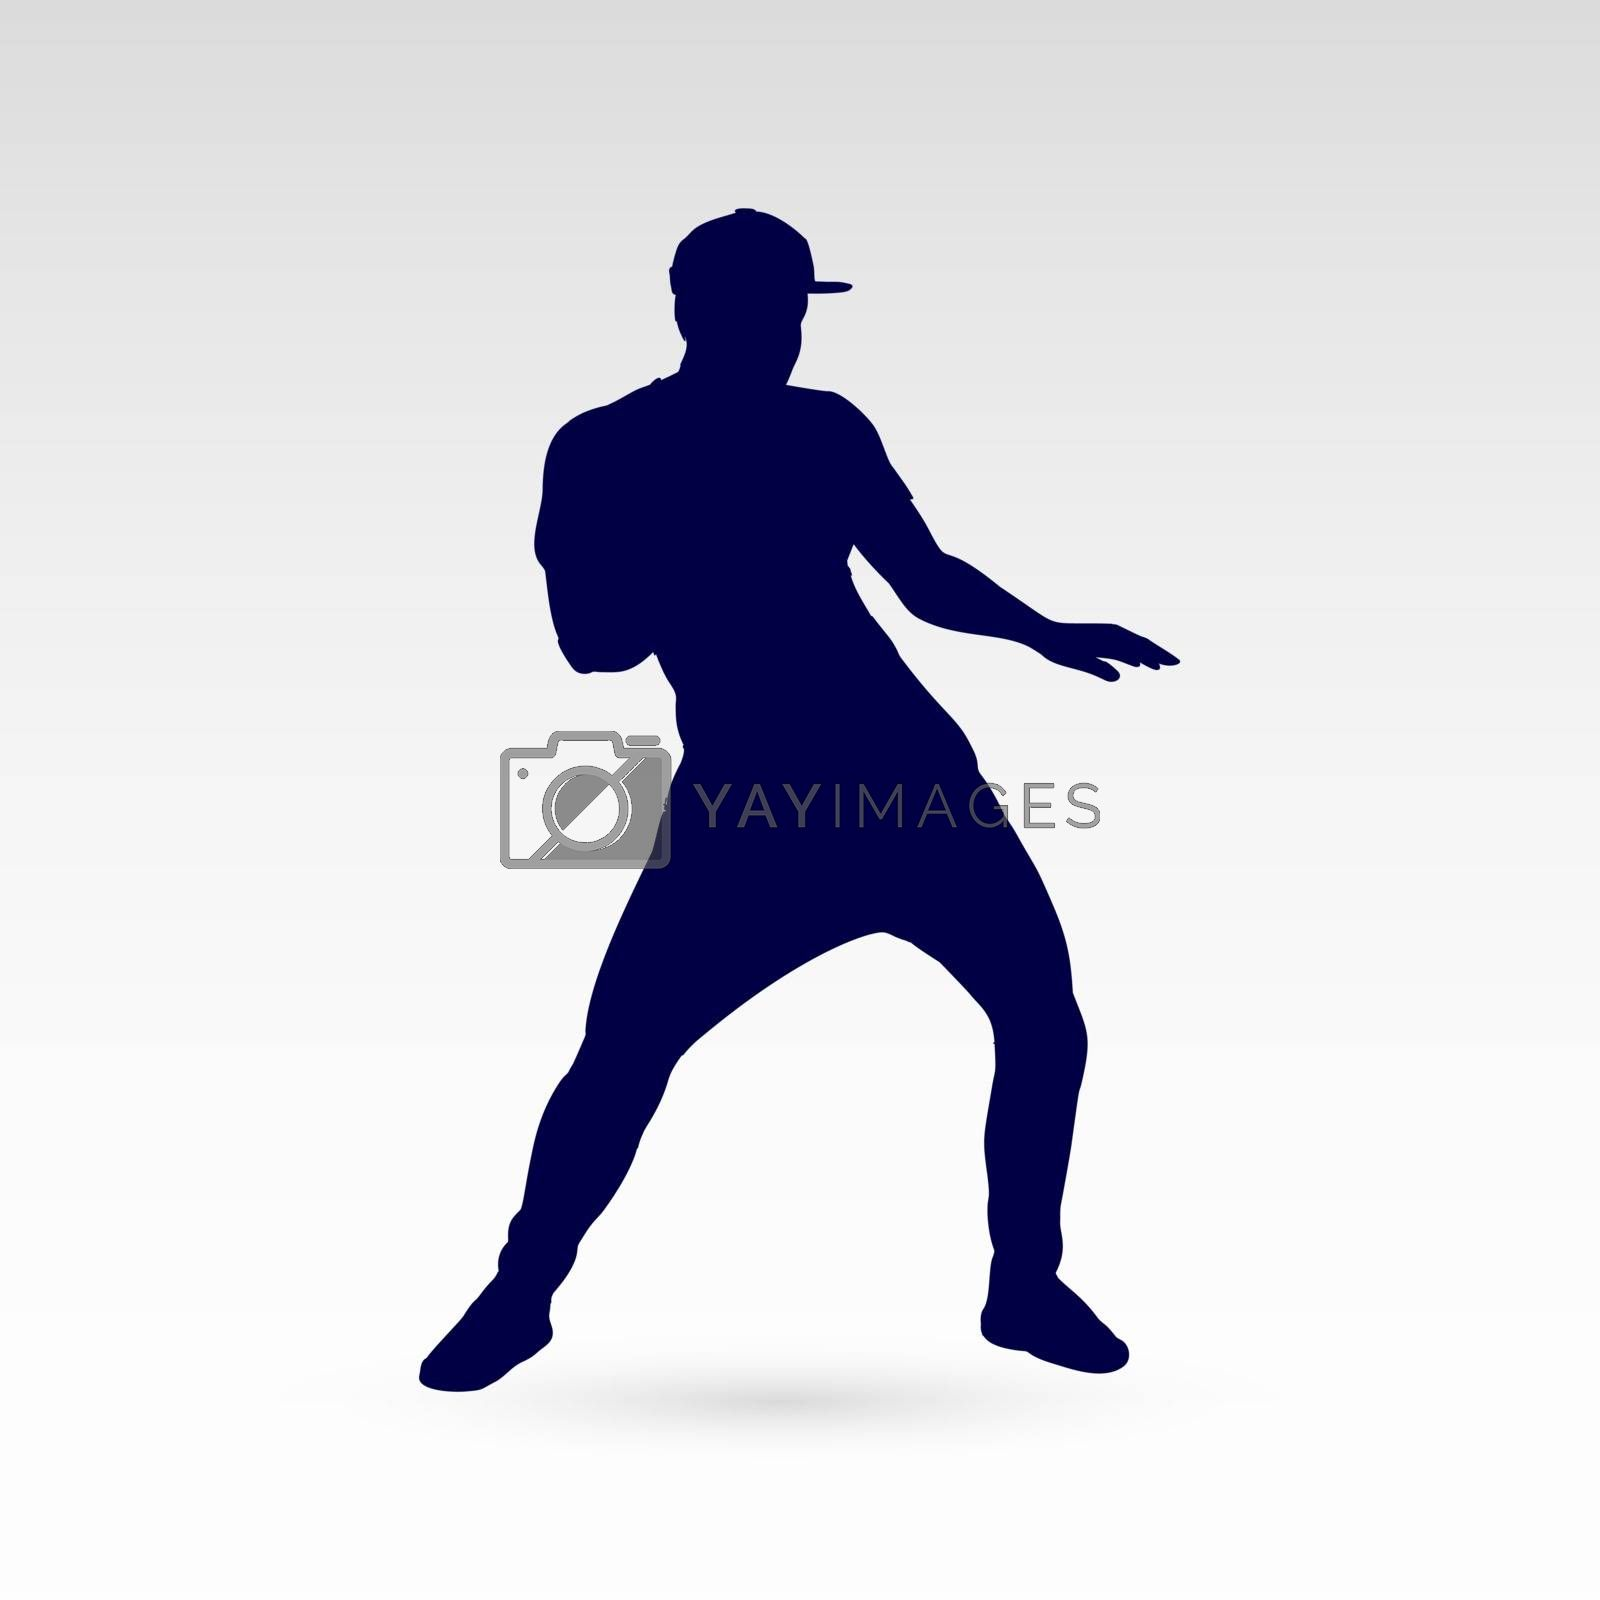 Royalty free image of Dancer by dvarg